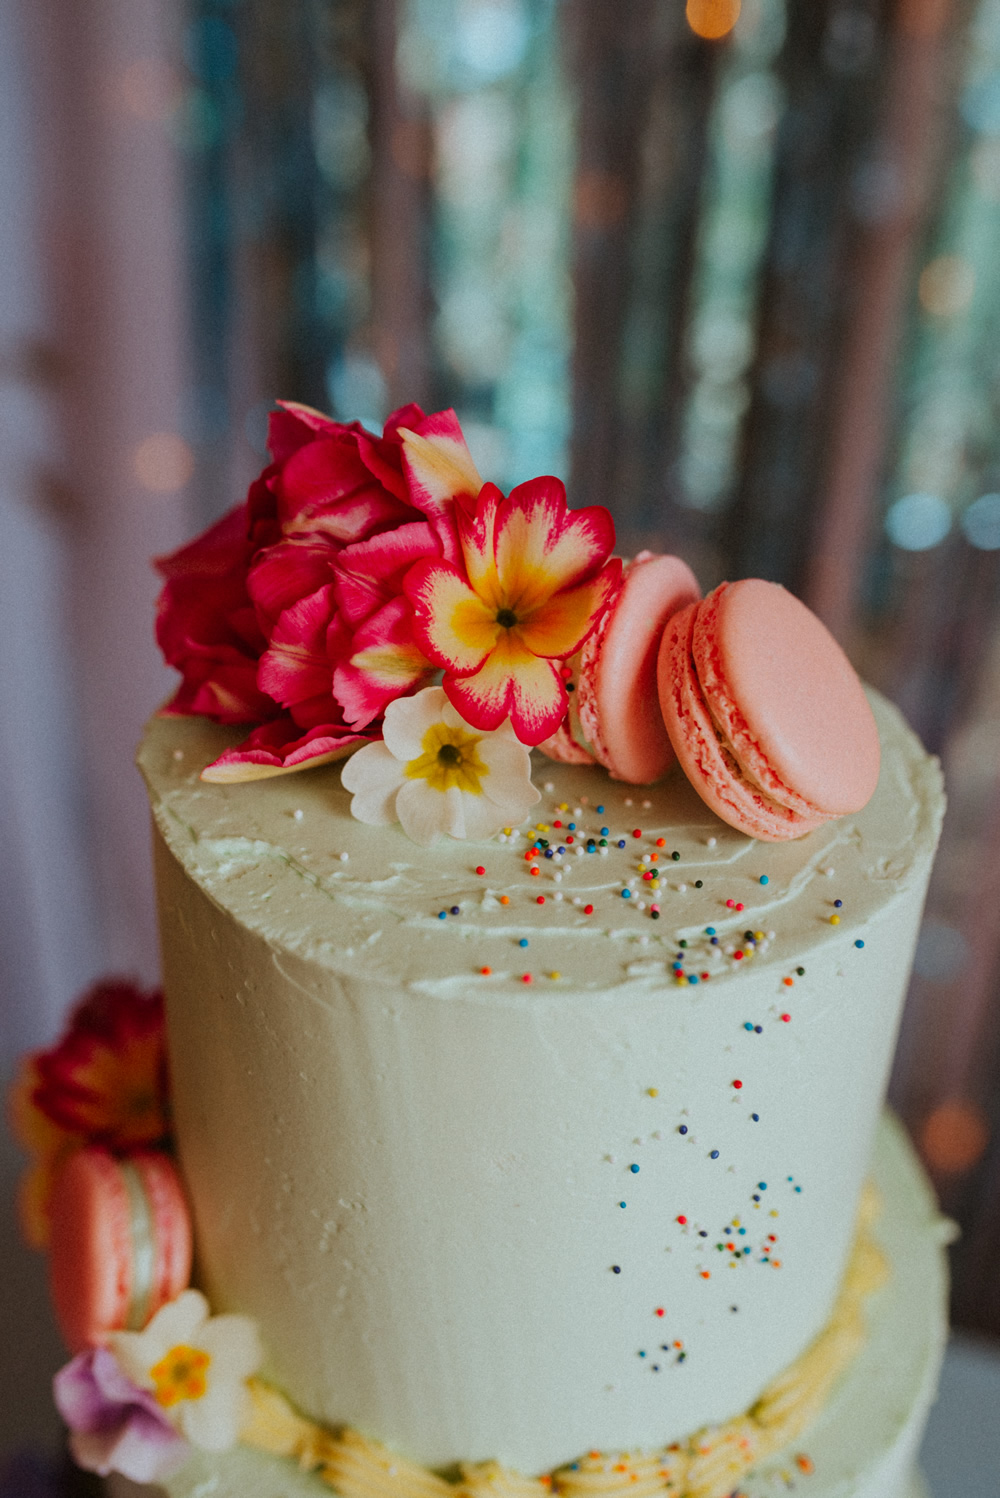 Edible flowers on the wedding cake